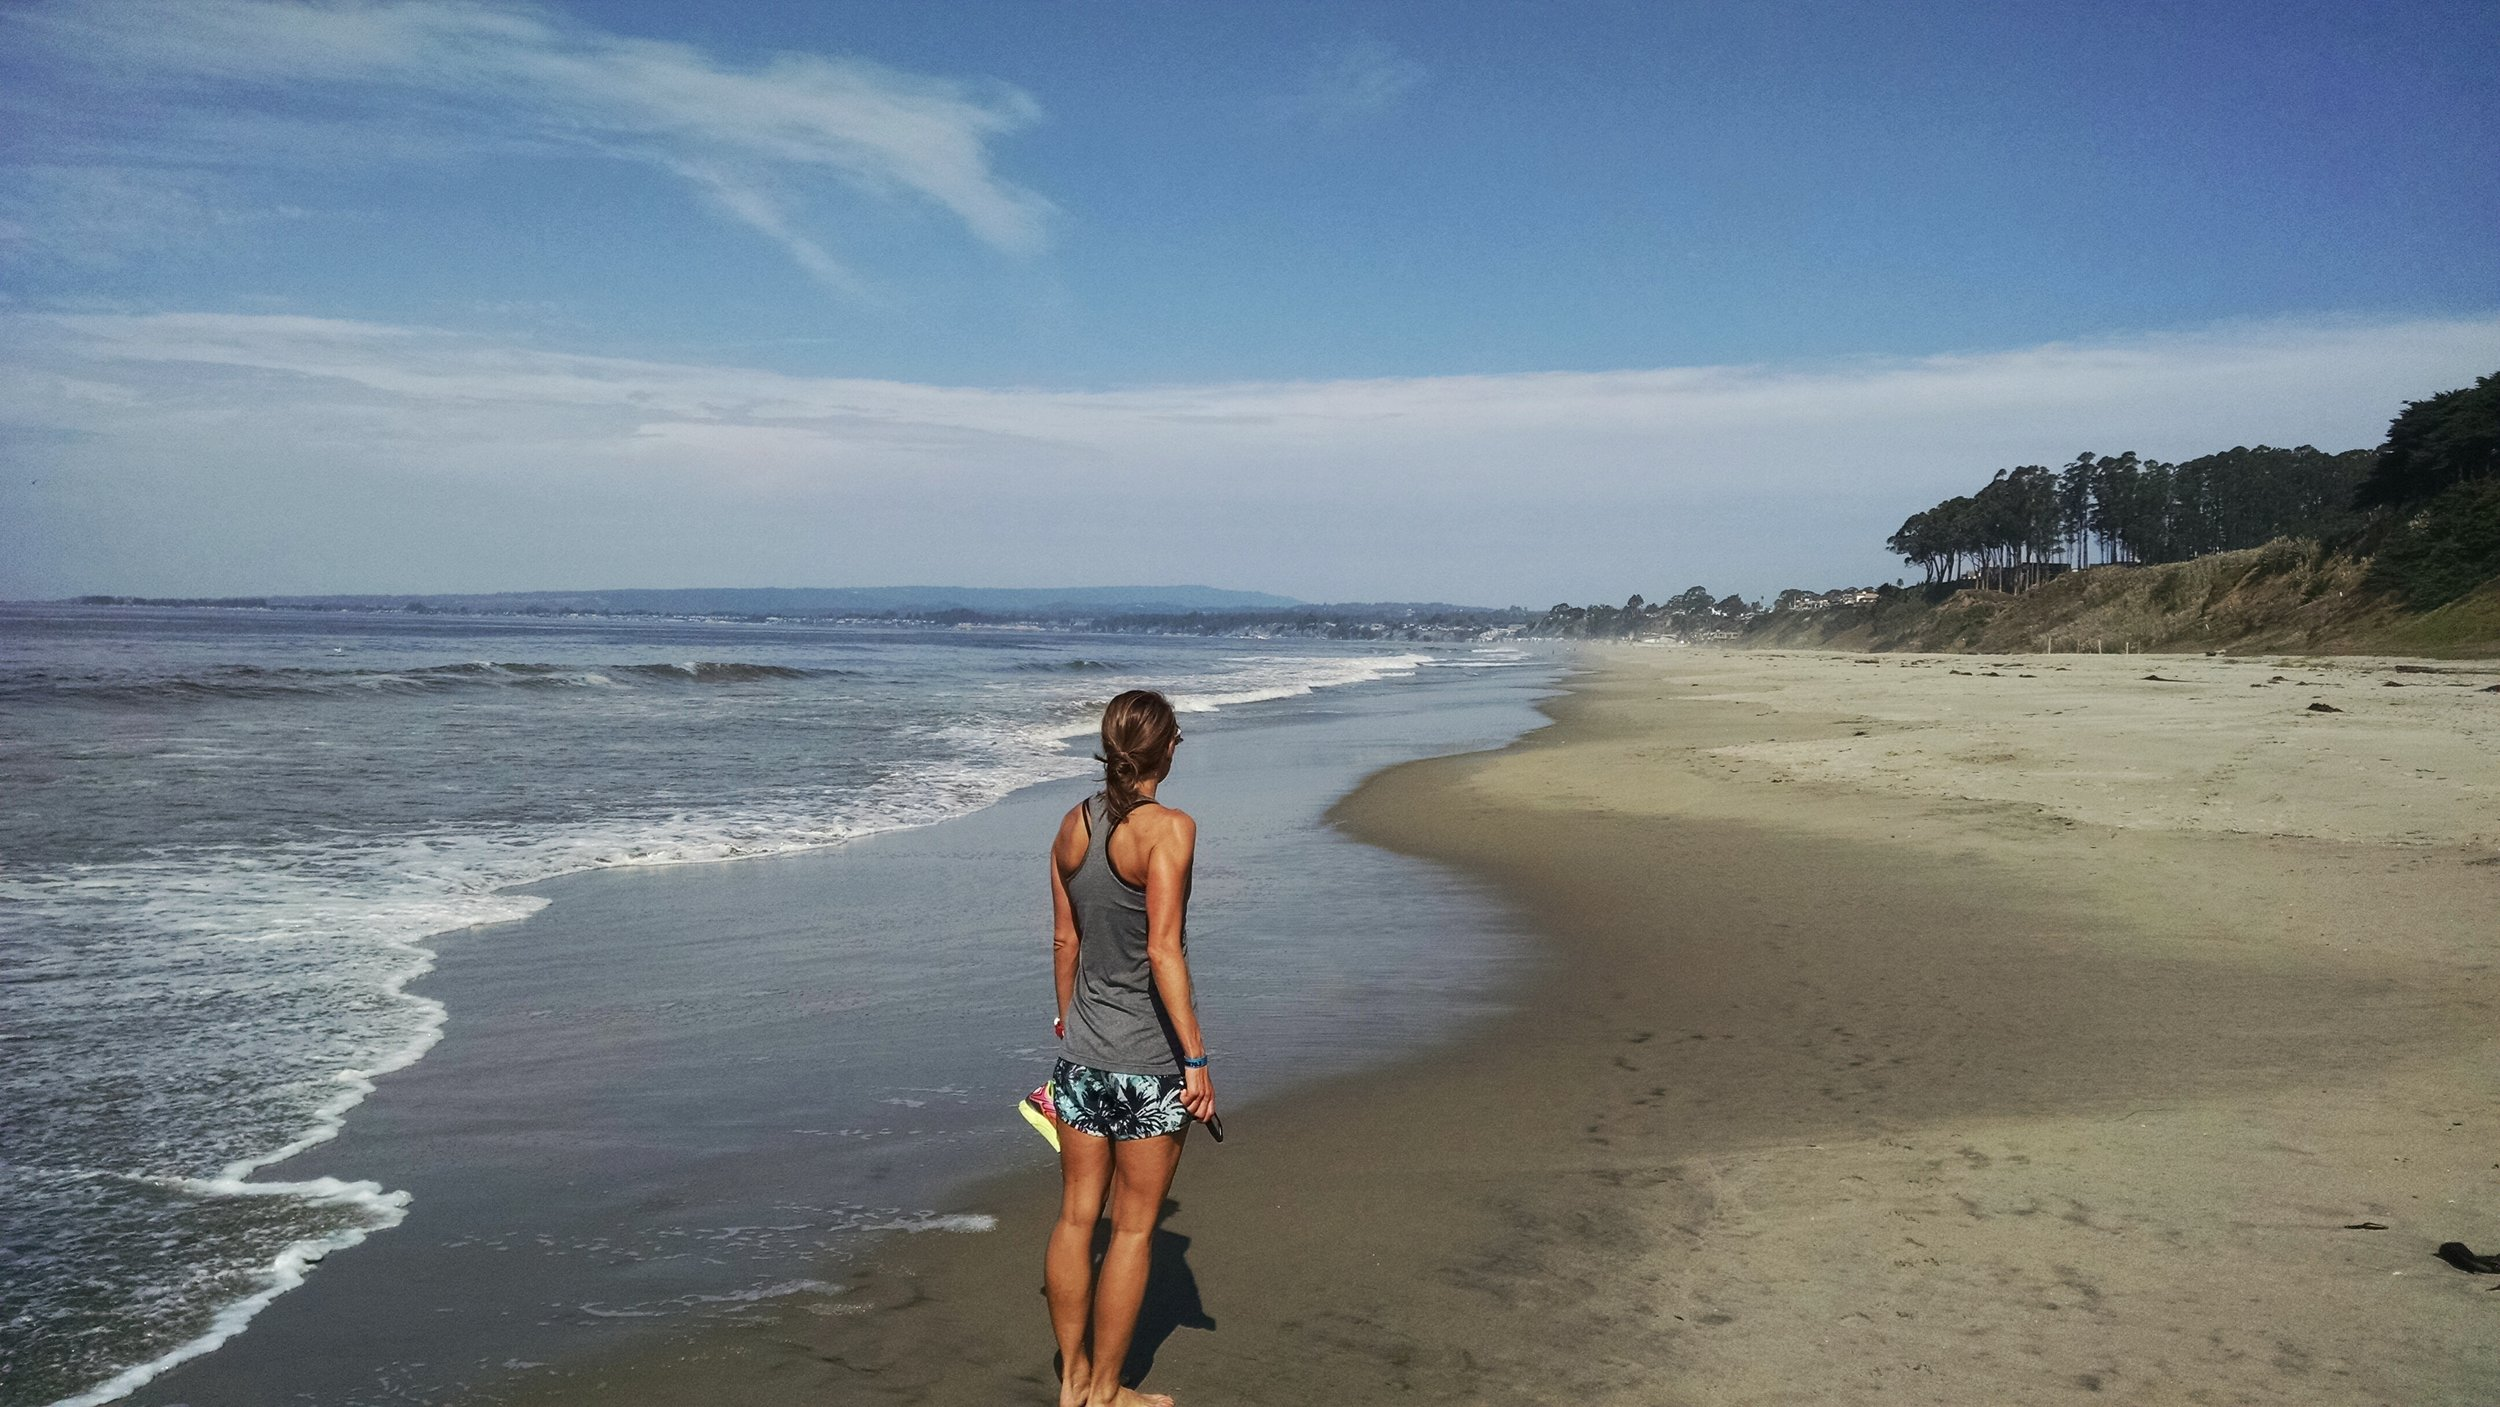 And one of the best parts about racing is having the chance to explore new places. In this case, I had the chance to visit family outside Santa Cruz and enjoyed a nice morning walk along the beach the day after the race. No better way to recover.